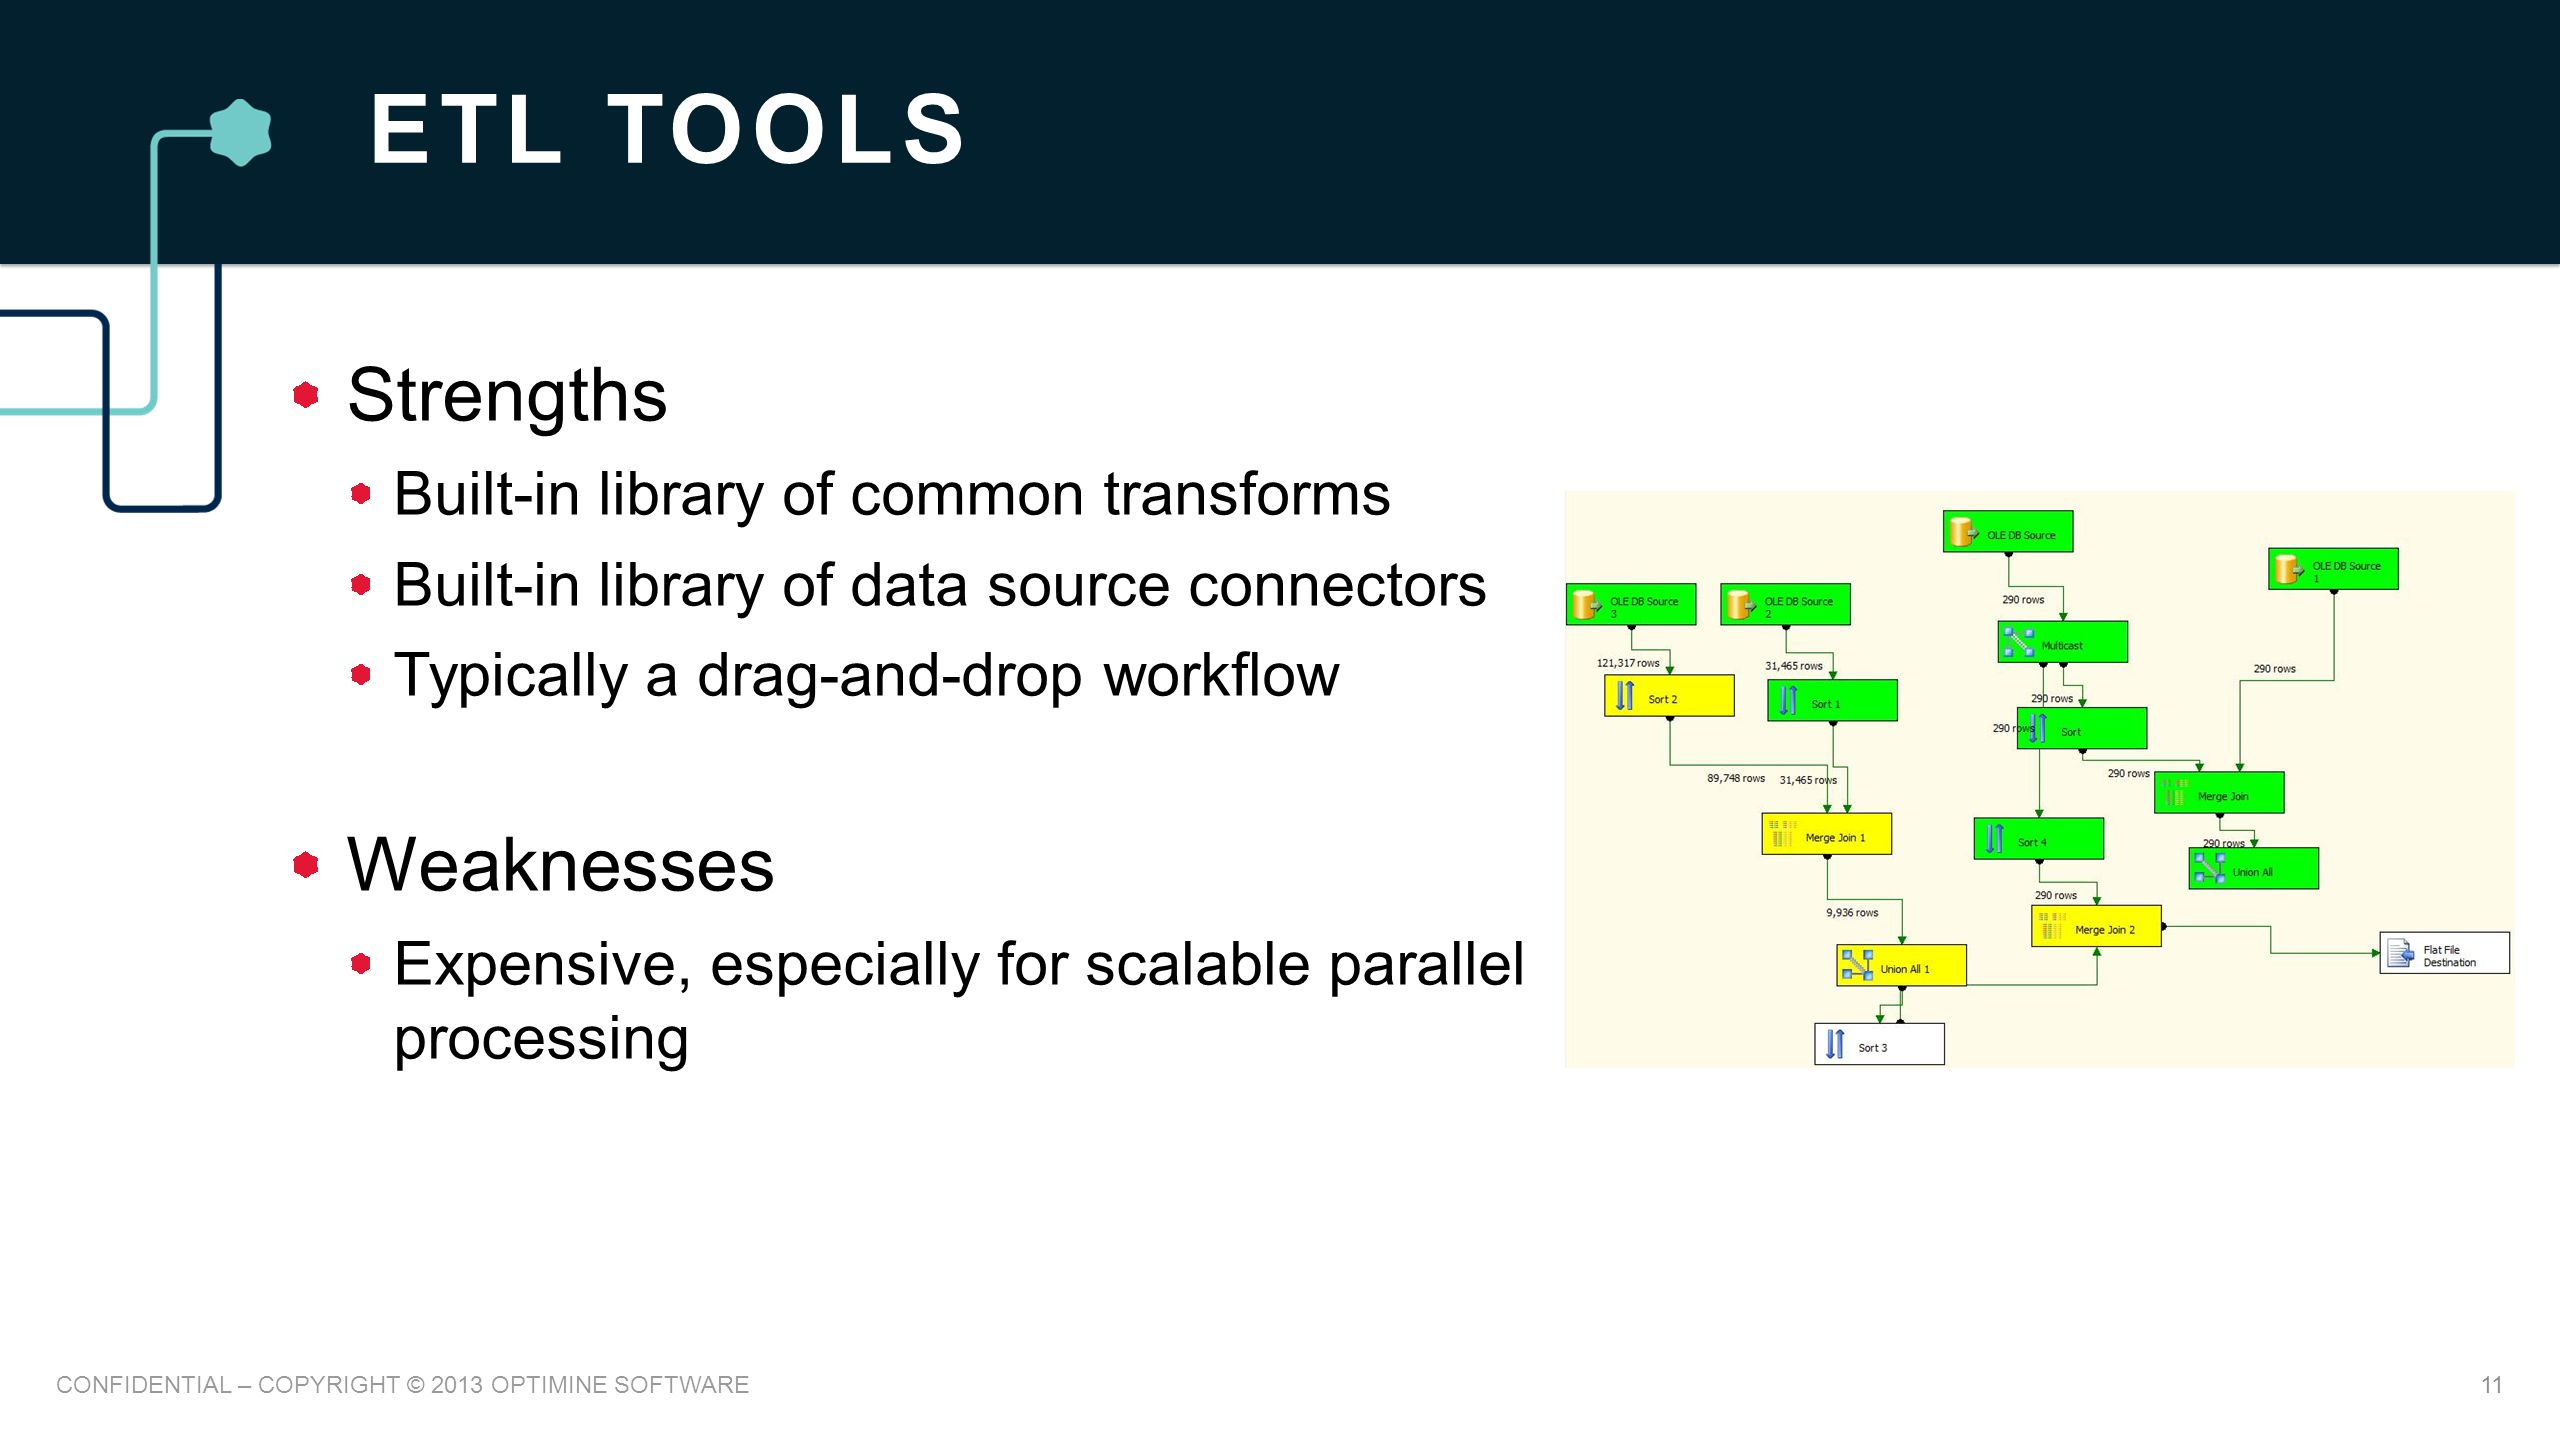 ETL TOOLS Strengths Built-in library of common transforms Built-in library of data source connectors Typically a drag-and-drop workflow Weaknesses Expensive, especially for scalable parallel processing 11CONFIDENTIAL – COPYRIGHT © 2013 OPTIMINE SOFTWARE